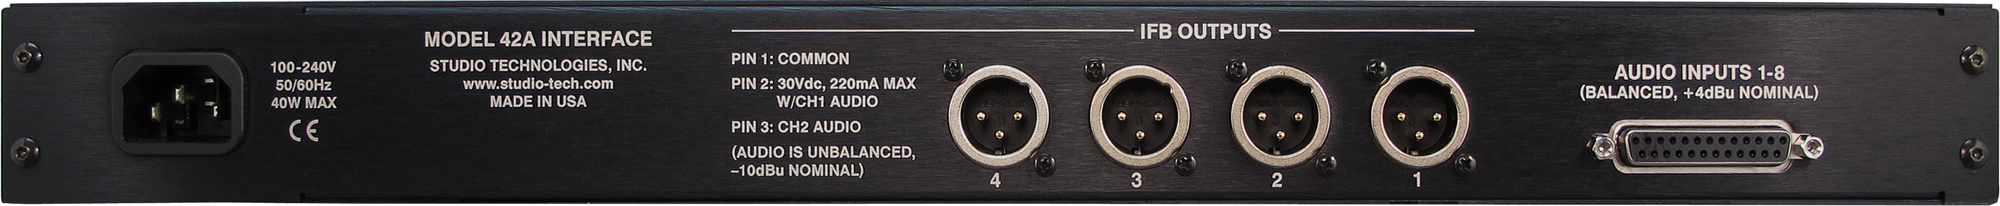 Model 42A Interface